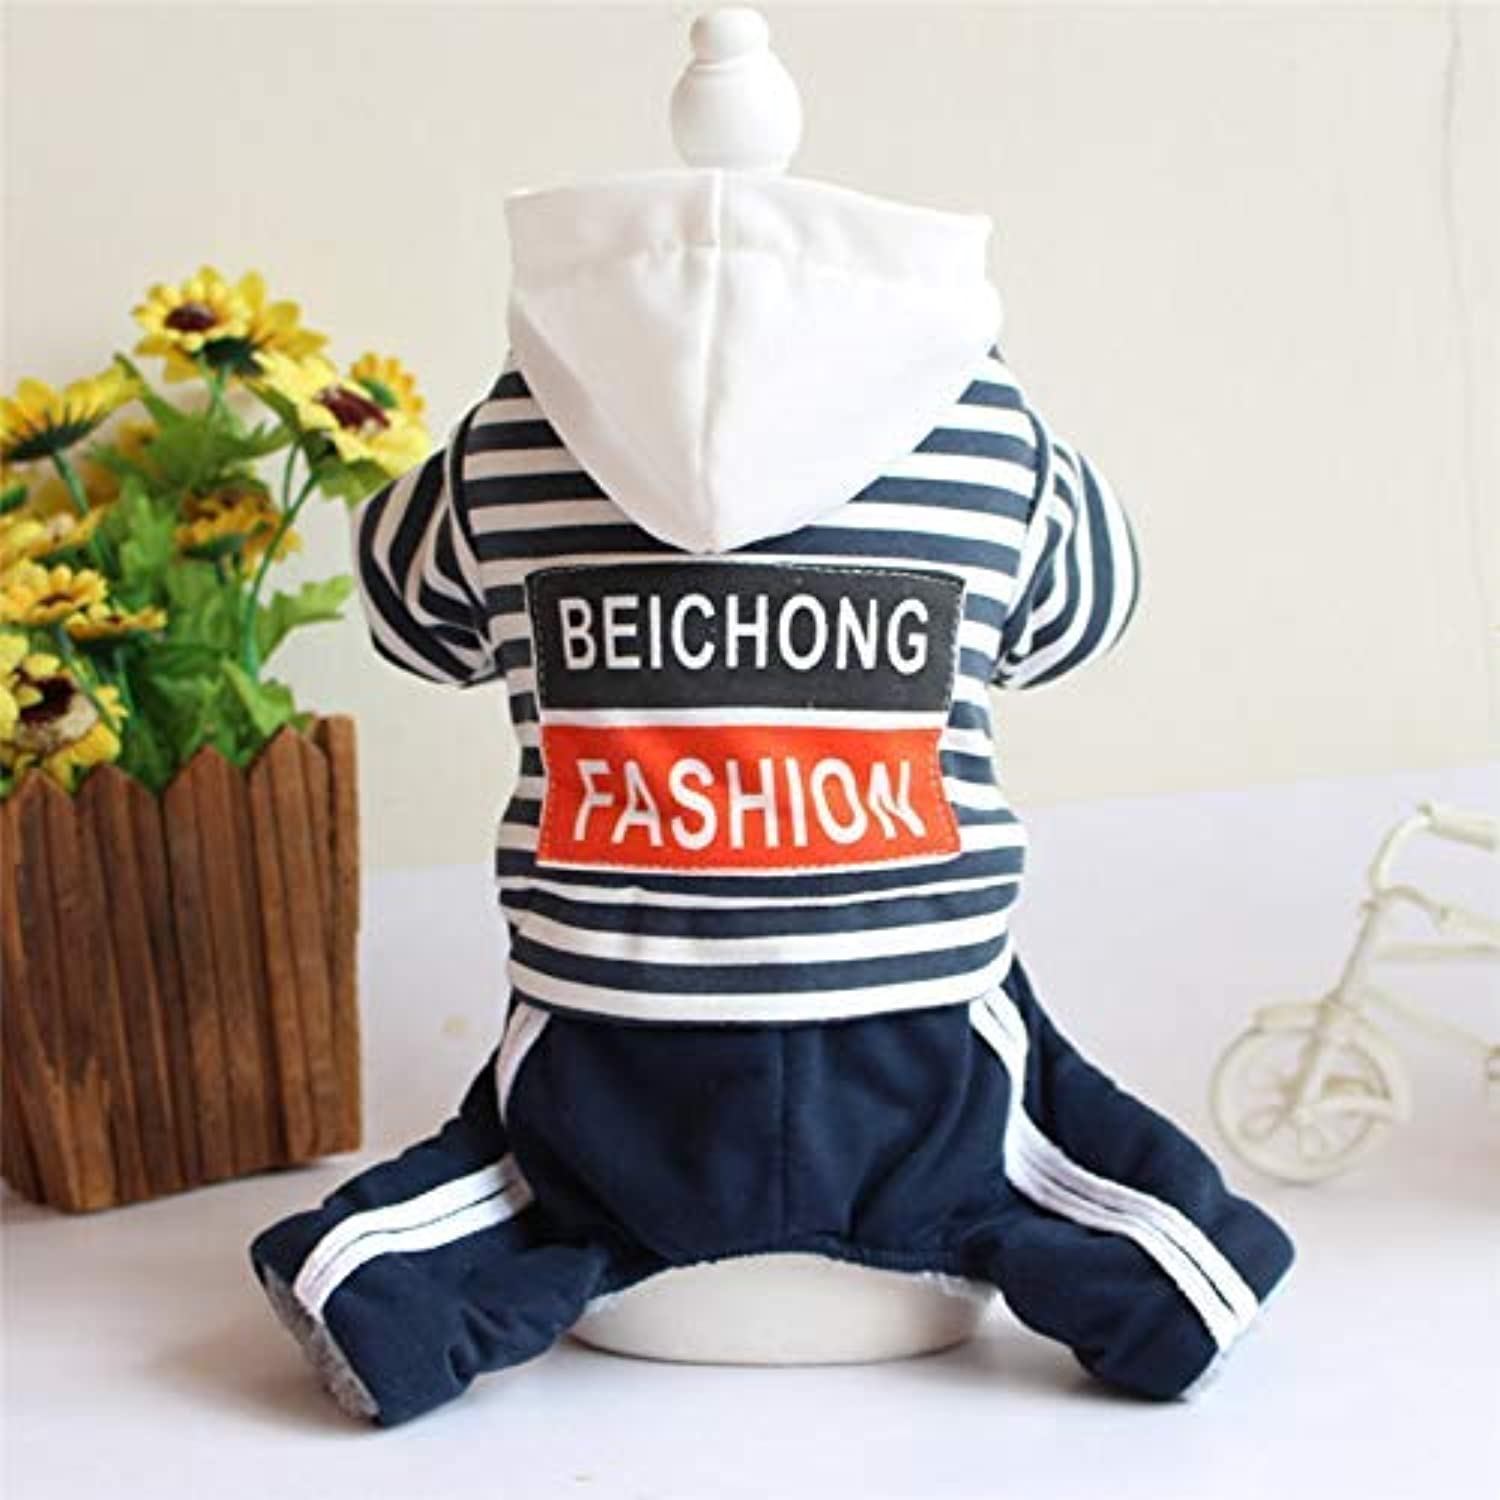 Doggy Costume New pet Clothes Autumn and Winter Clothing Dog Teddy Bear Four feet Striped Print Hooded Jumpsuit (color   Dark bluee, Size   M) Pet Dog Clothes (color   Dark bluee, Size   M)